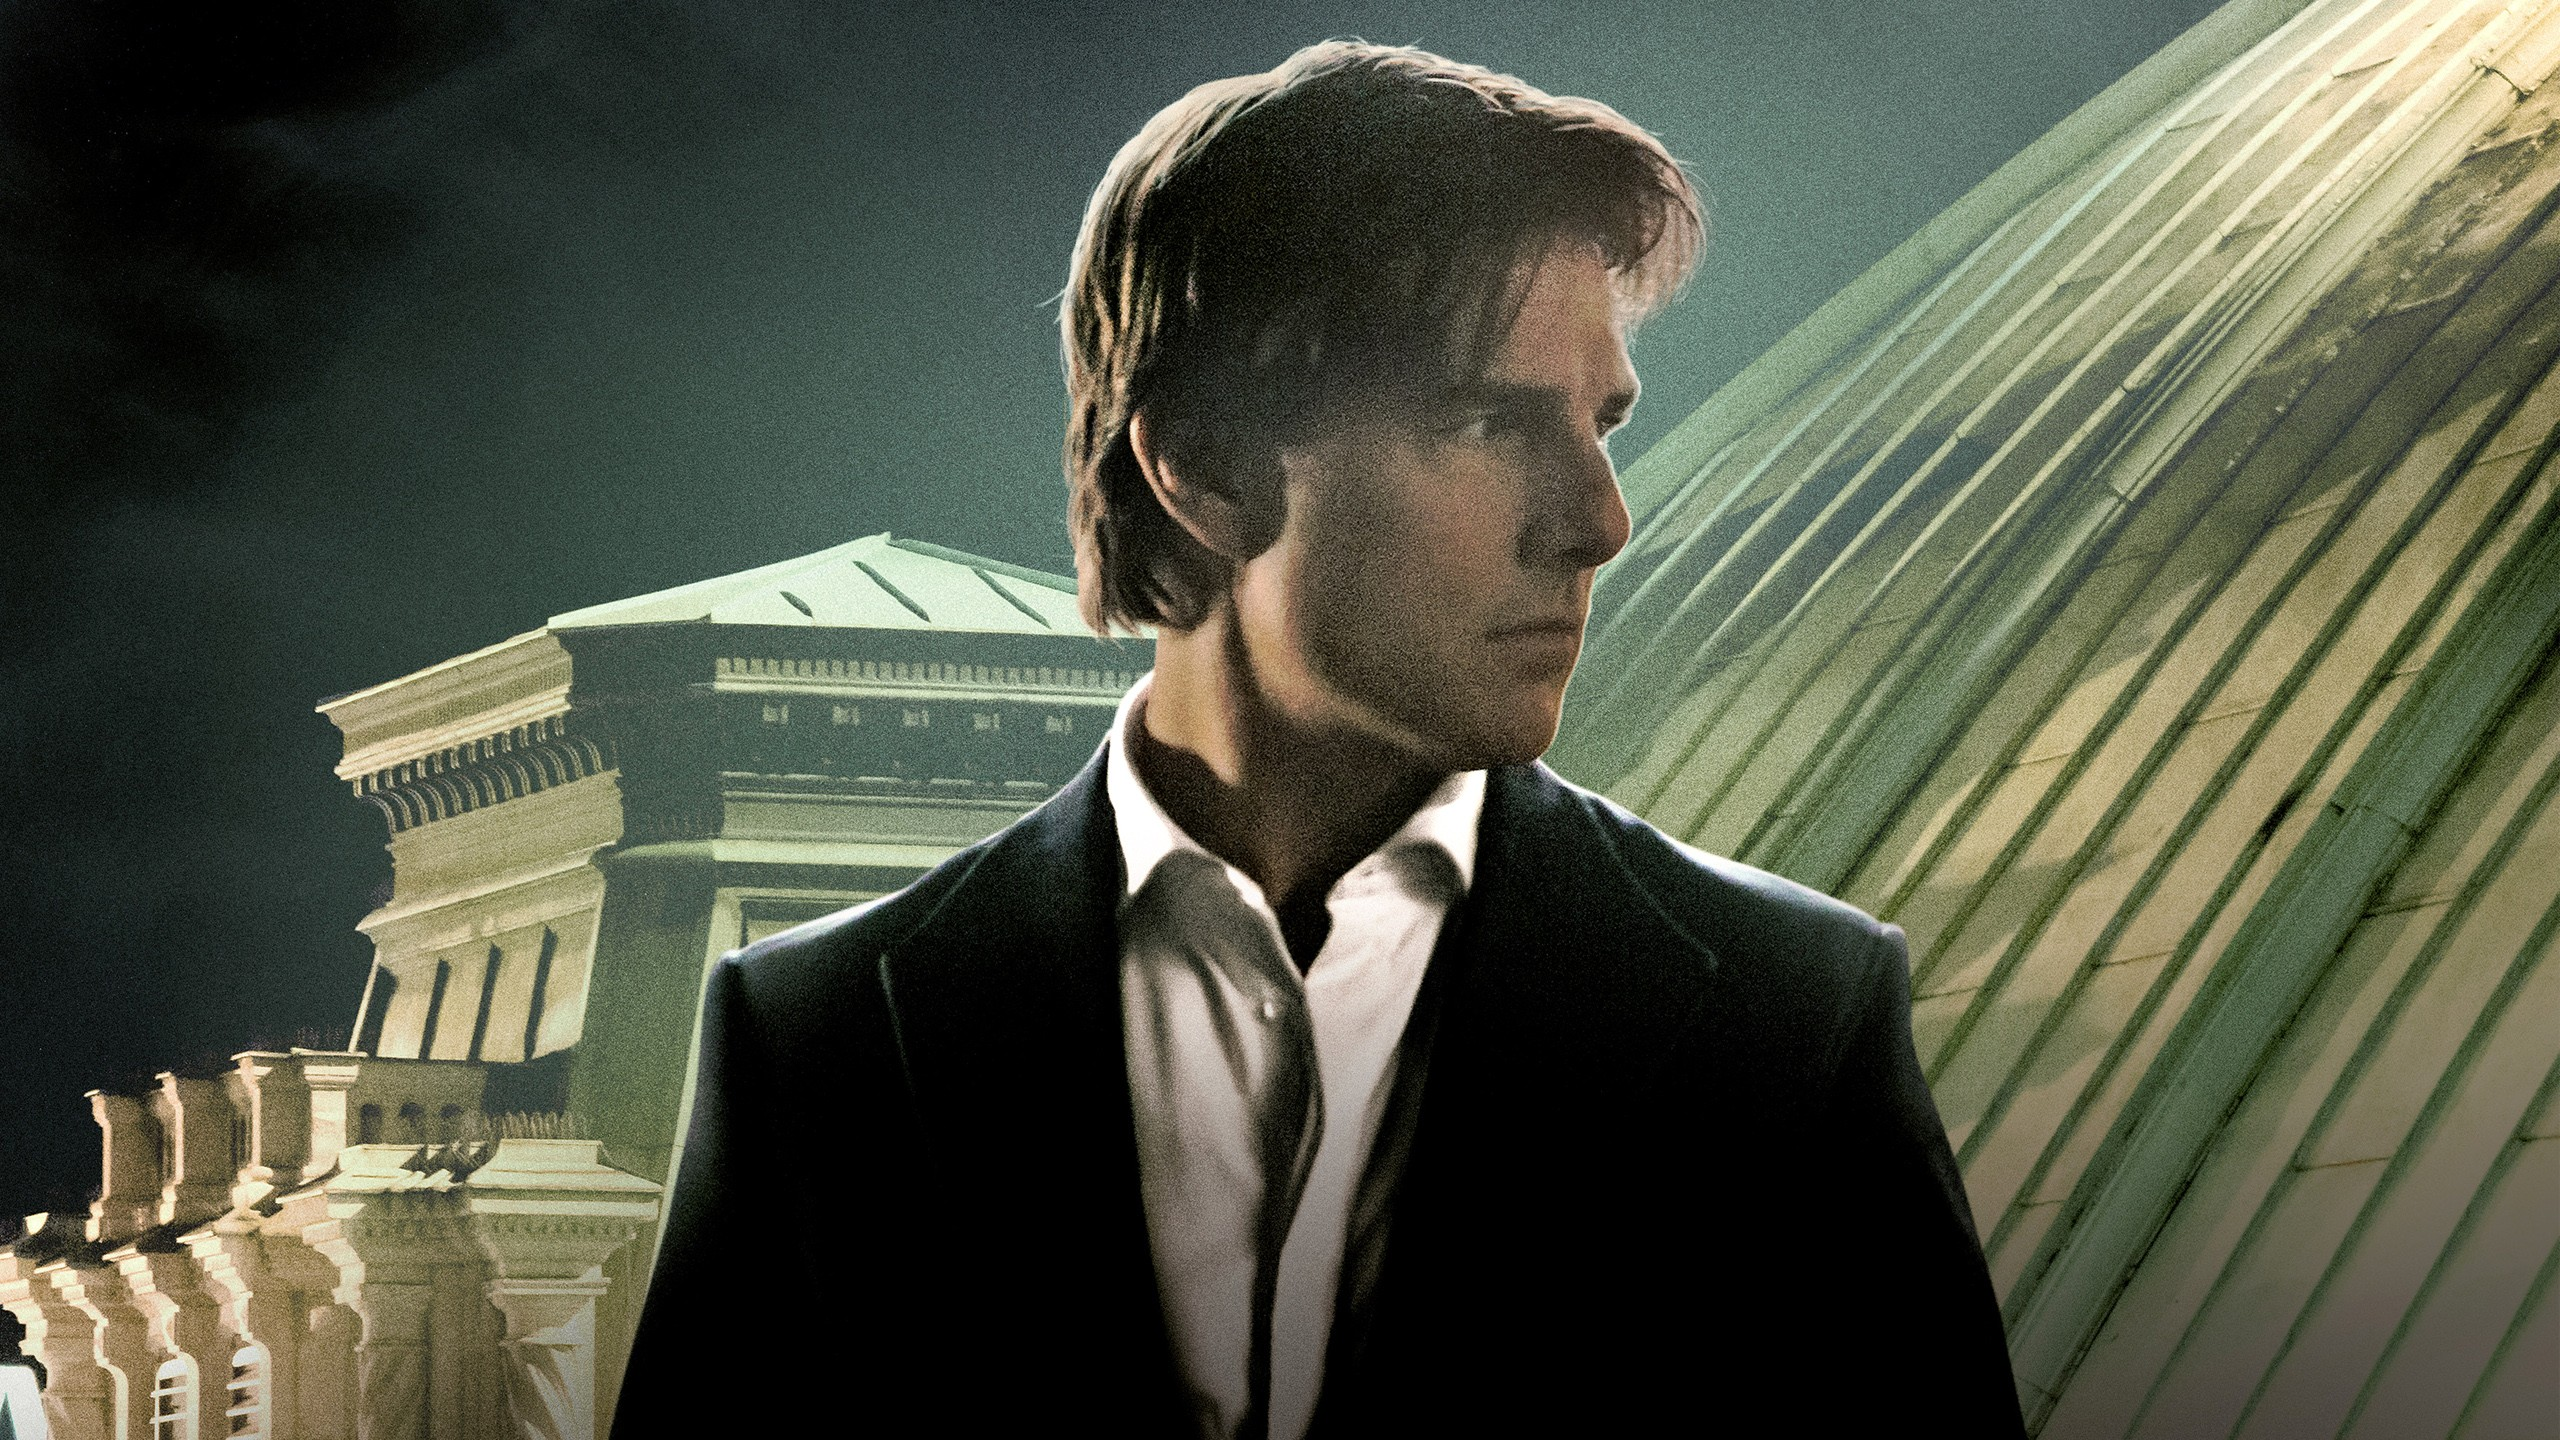 Tom Cruise Quotes 90 Wallpapers: Download HD Wallpaper For Free